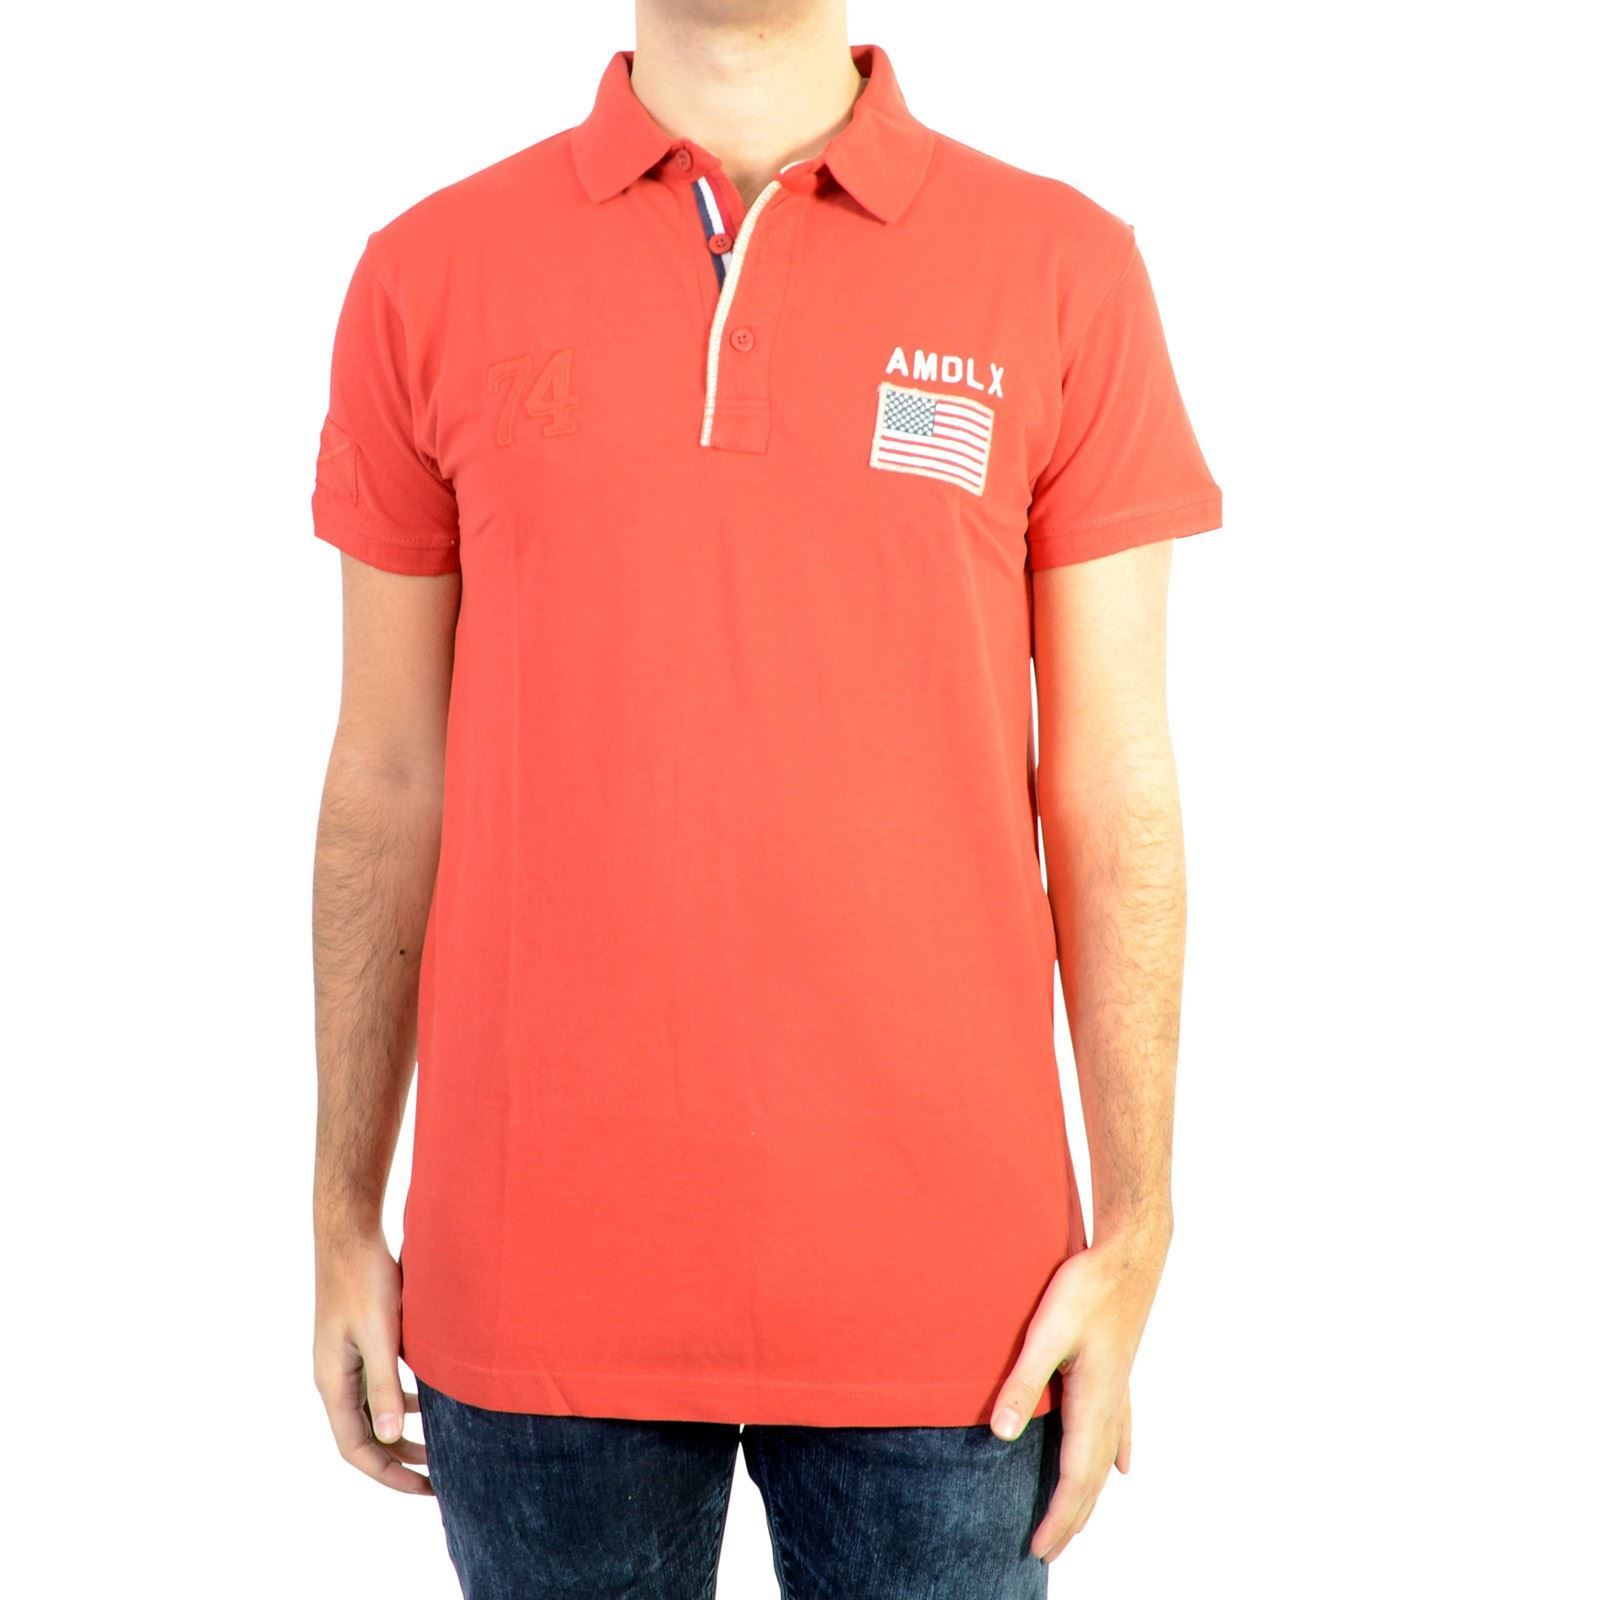 Rouge Deeluxe Courtes Courtes Polo Manches Deeluxe Courtes Rouge Manches Polo Polo Manches Deeluxe 4qRxw7f